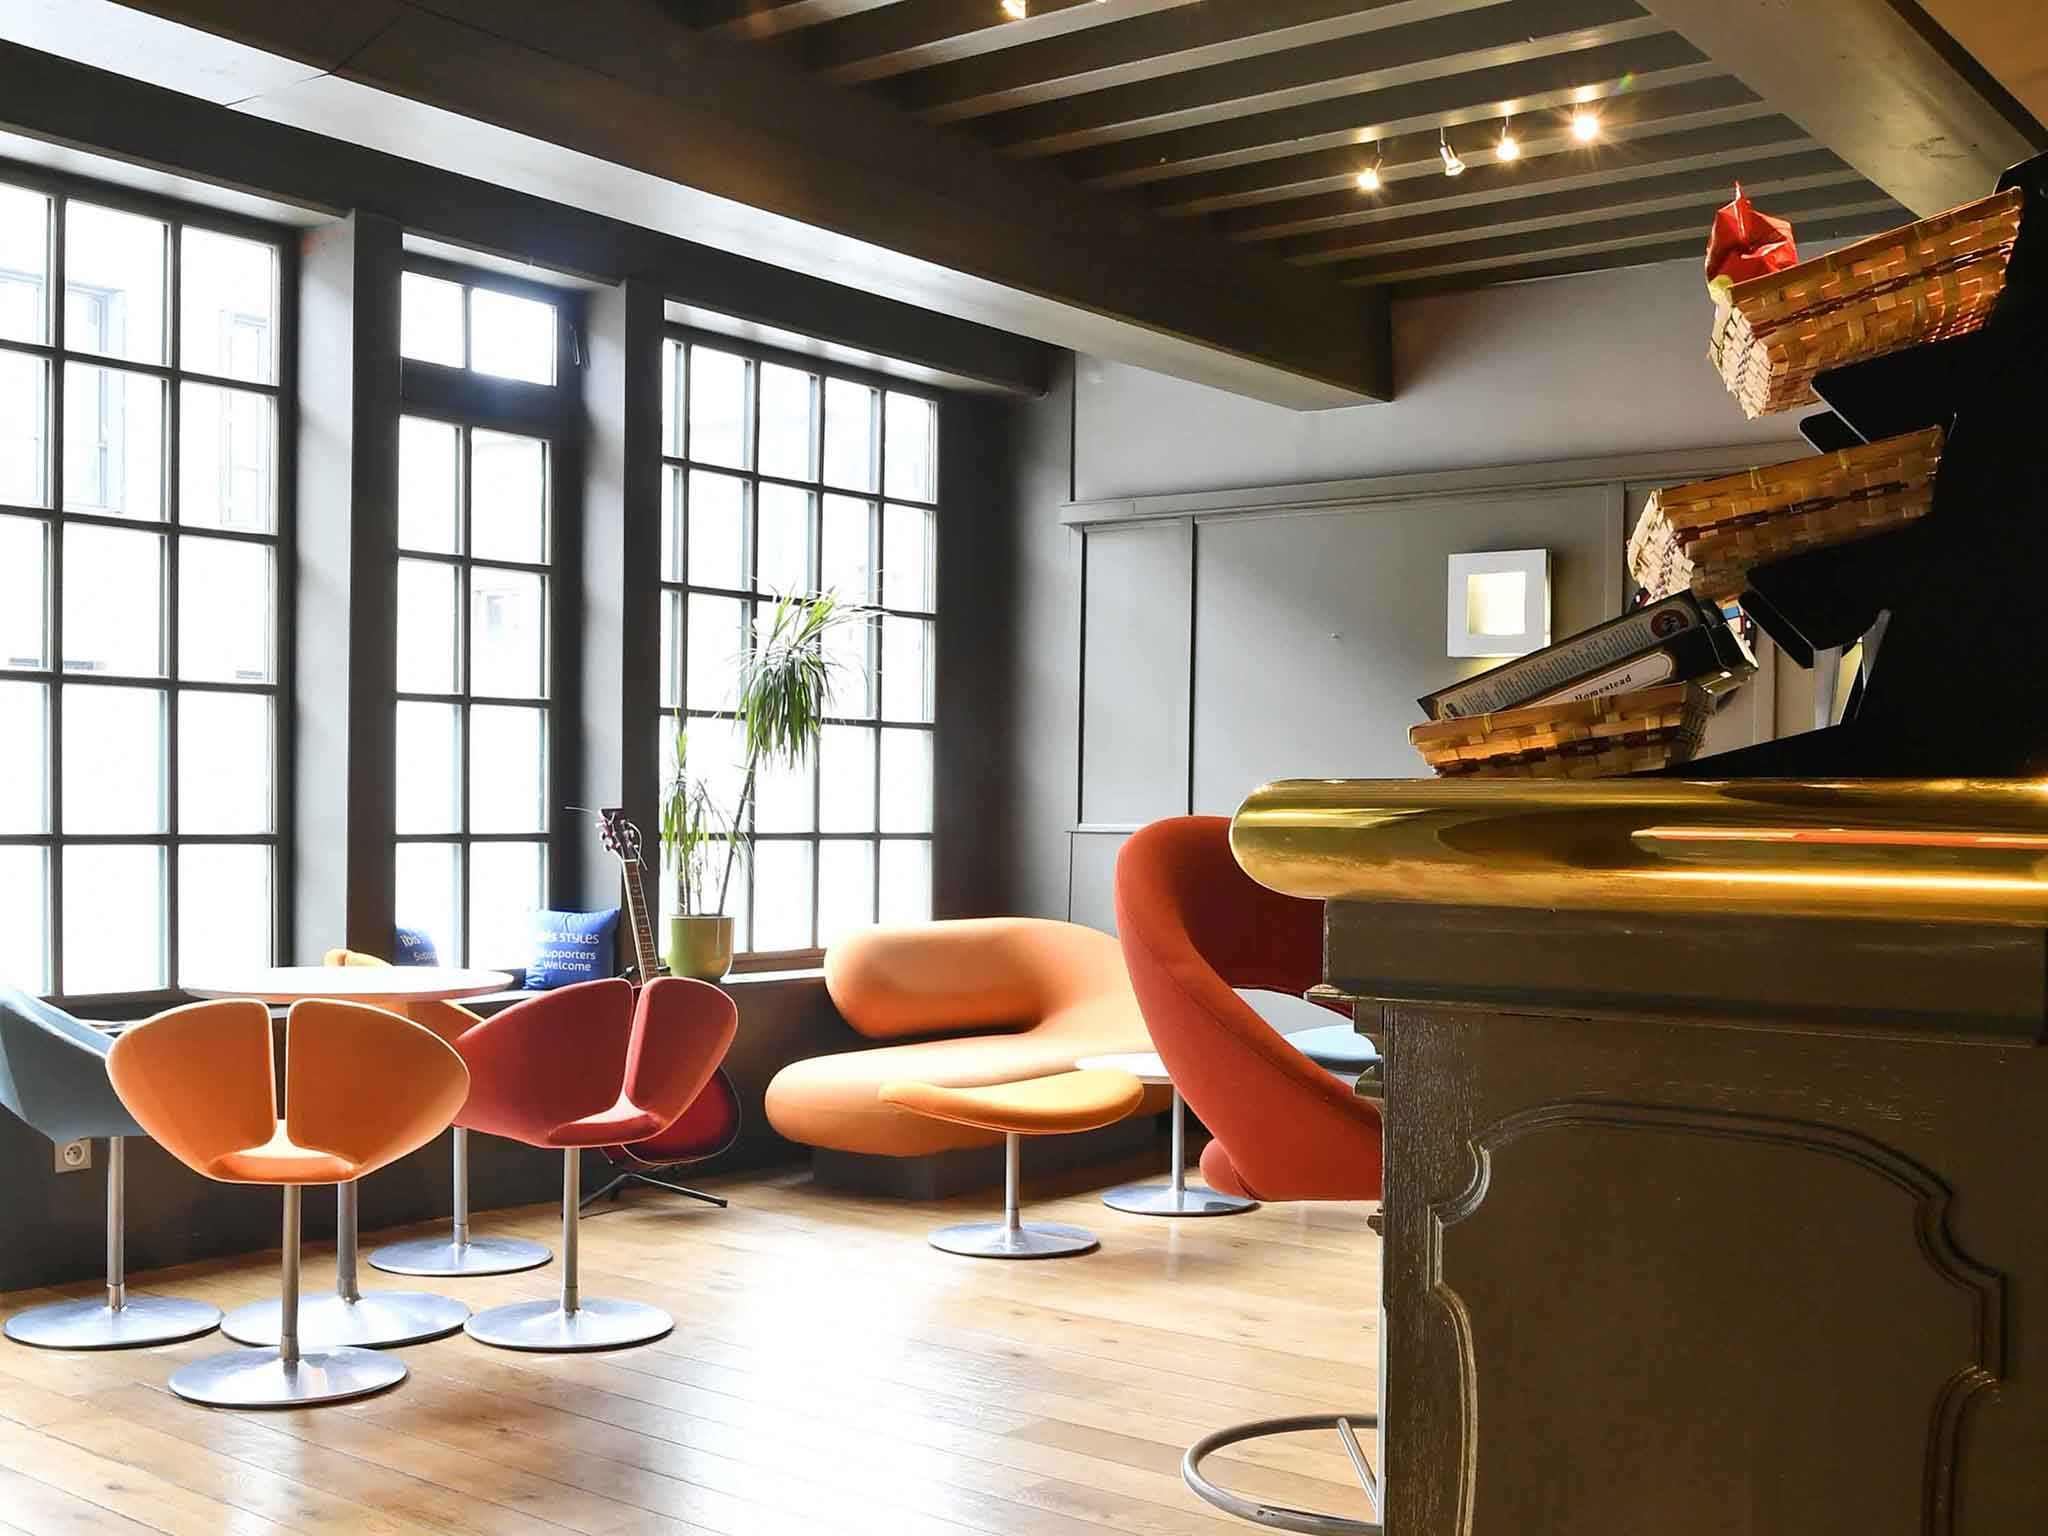 bar ibis styles amiens cathedrale with maison du monde gambetta lille. Black Bedroom Furniture Sets. Home Design Ideas